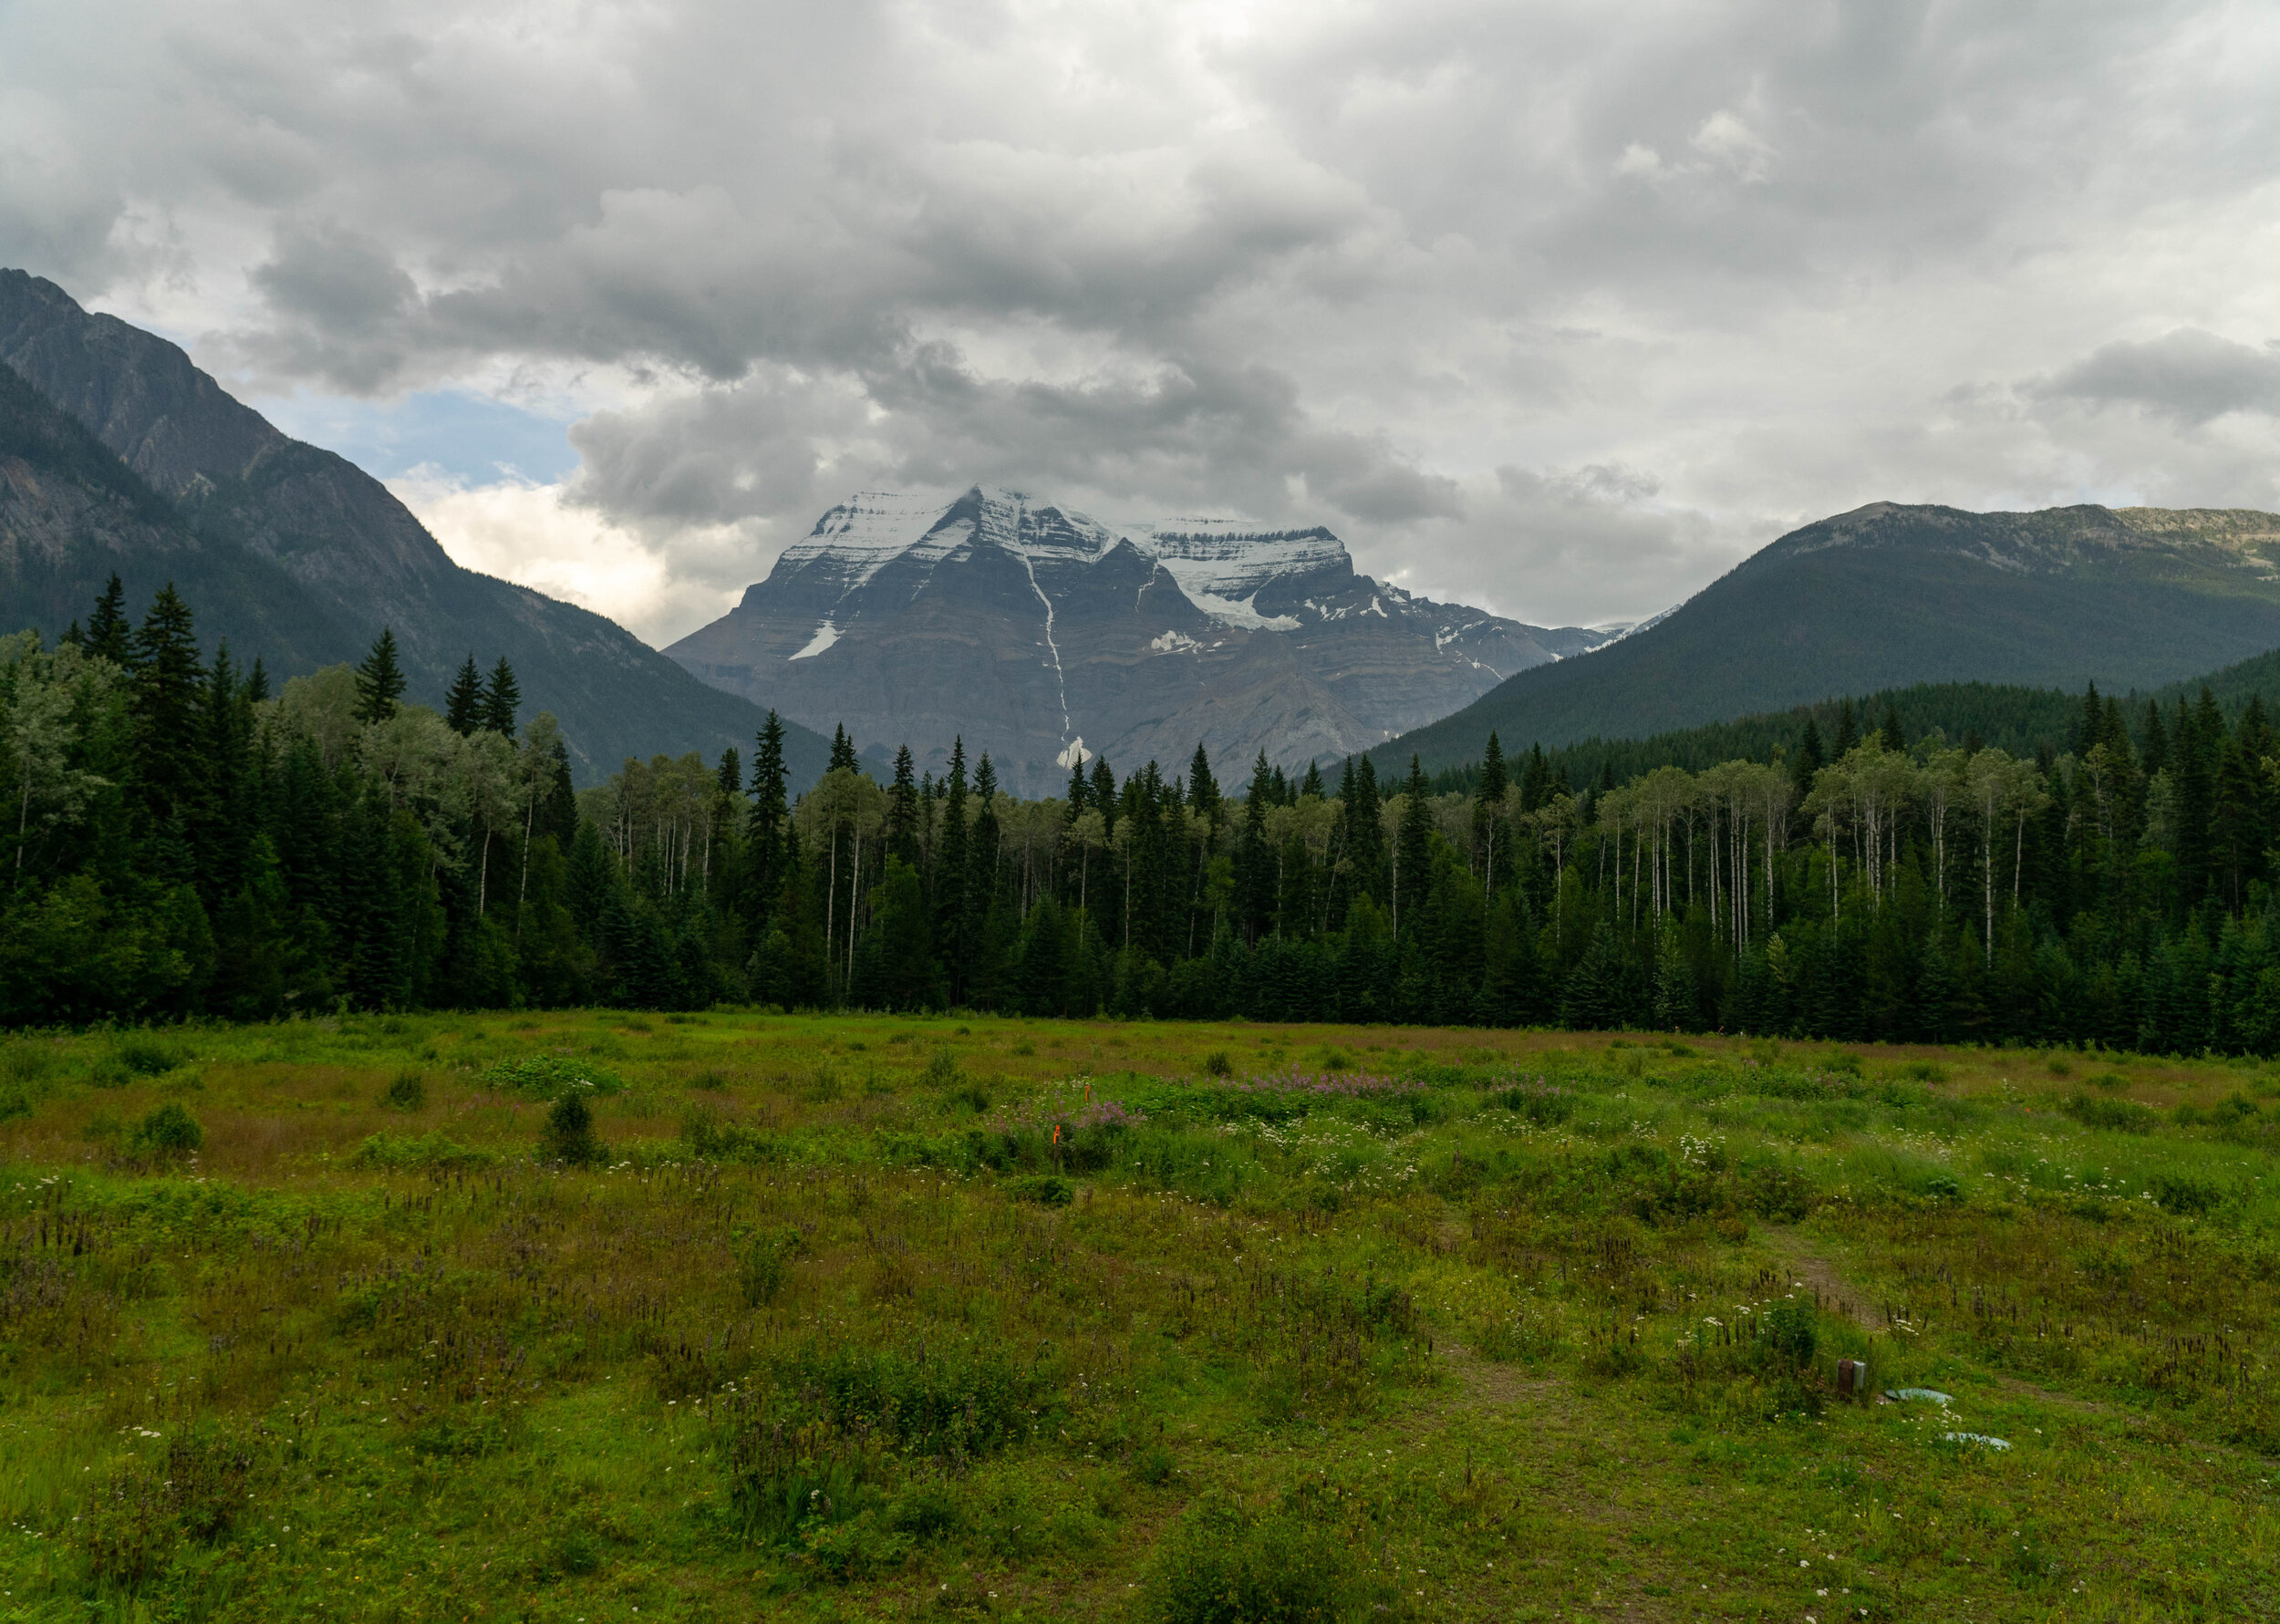 View from the Mount Robson Visitor Center.